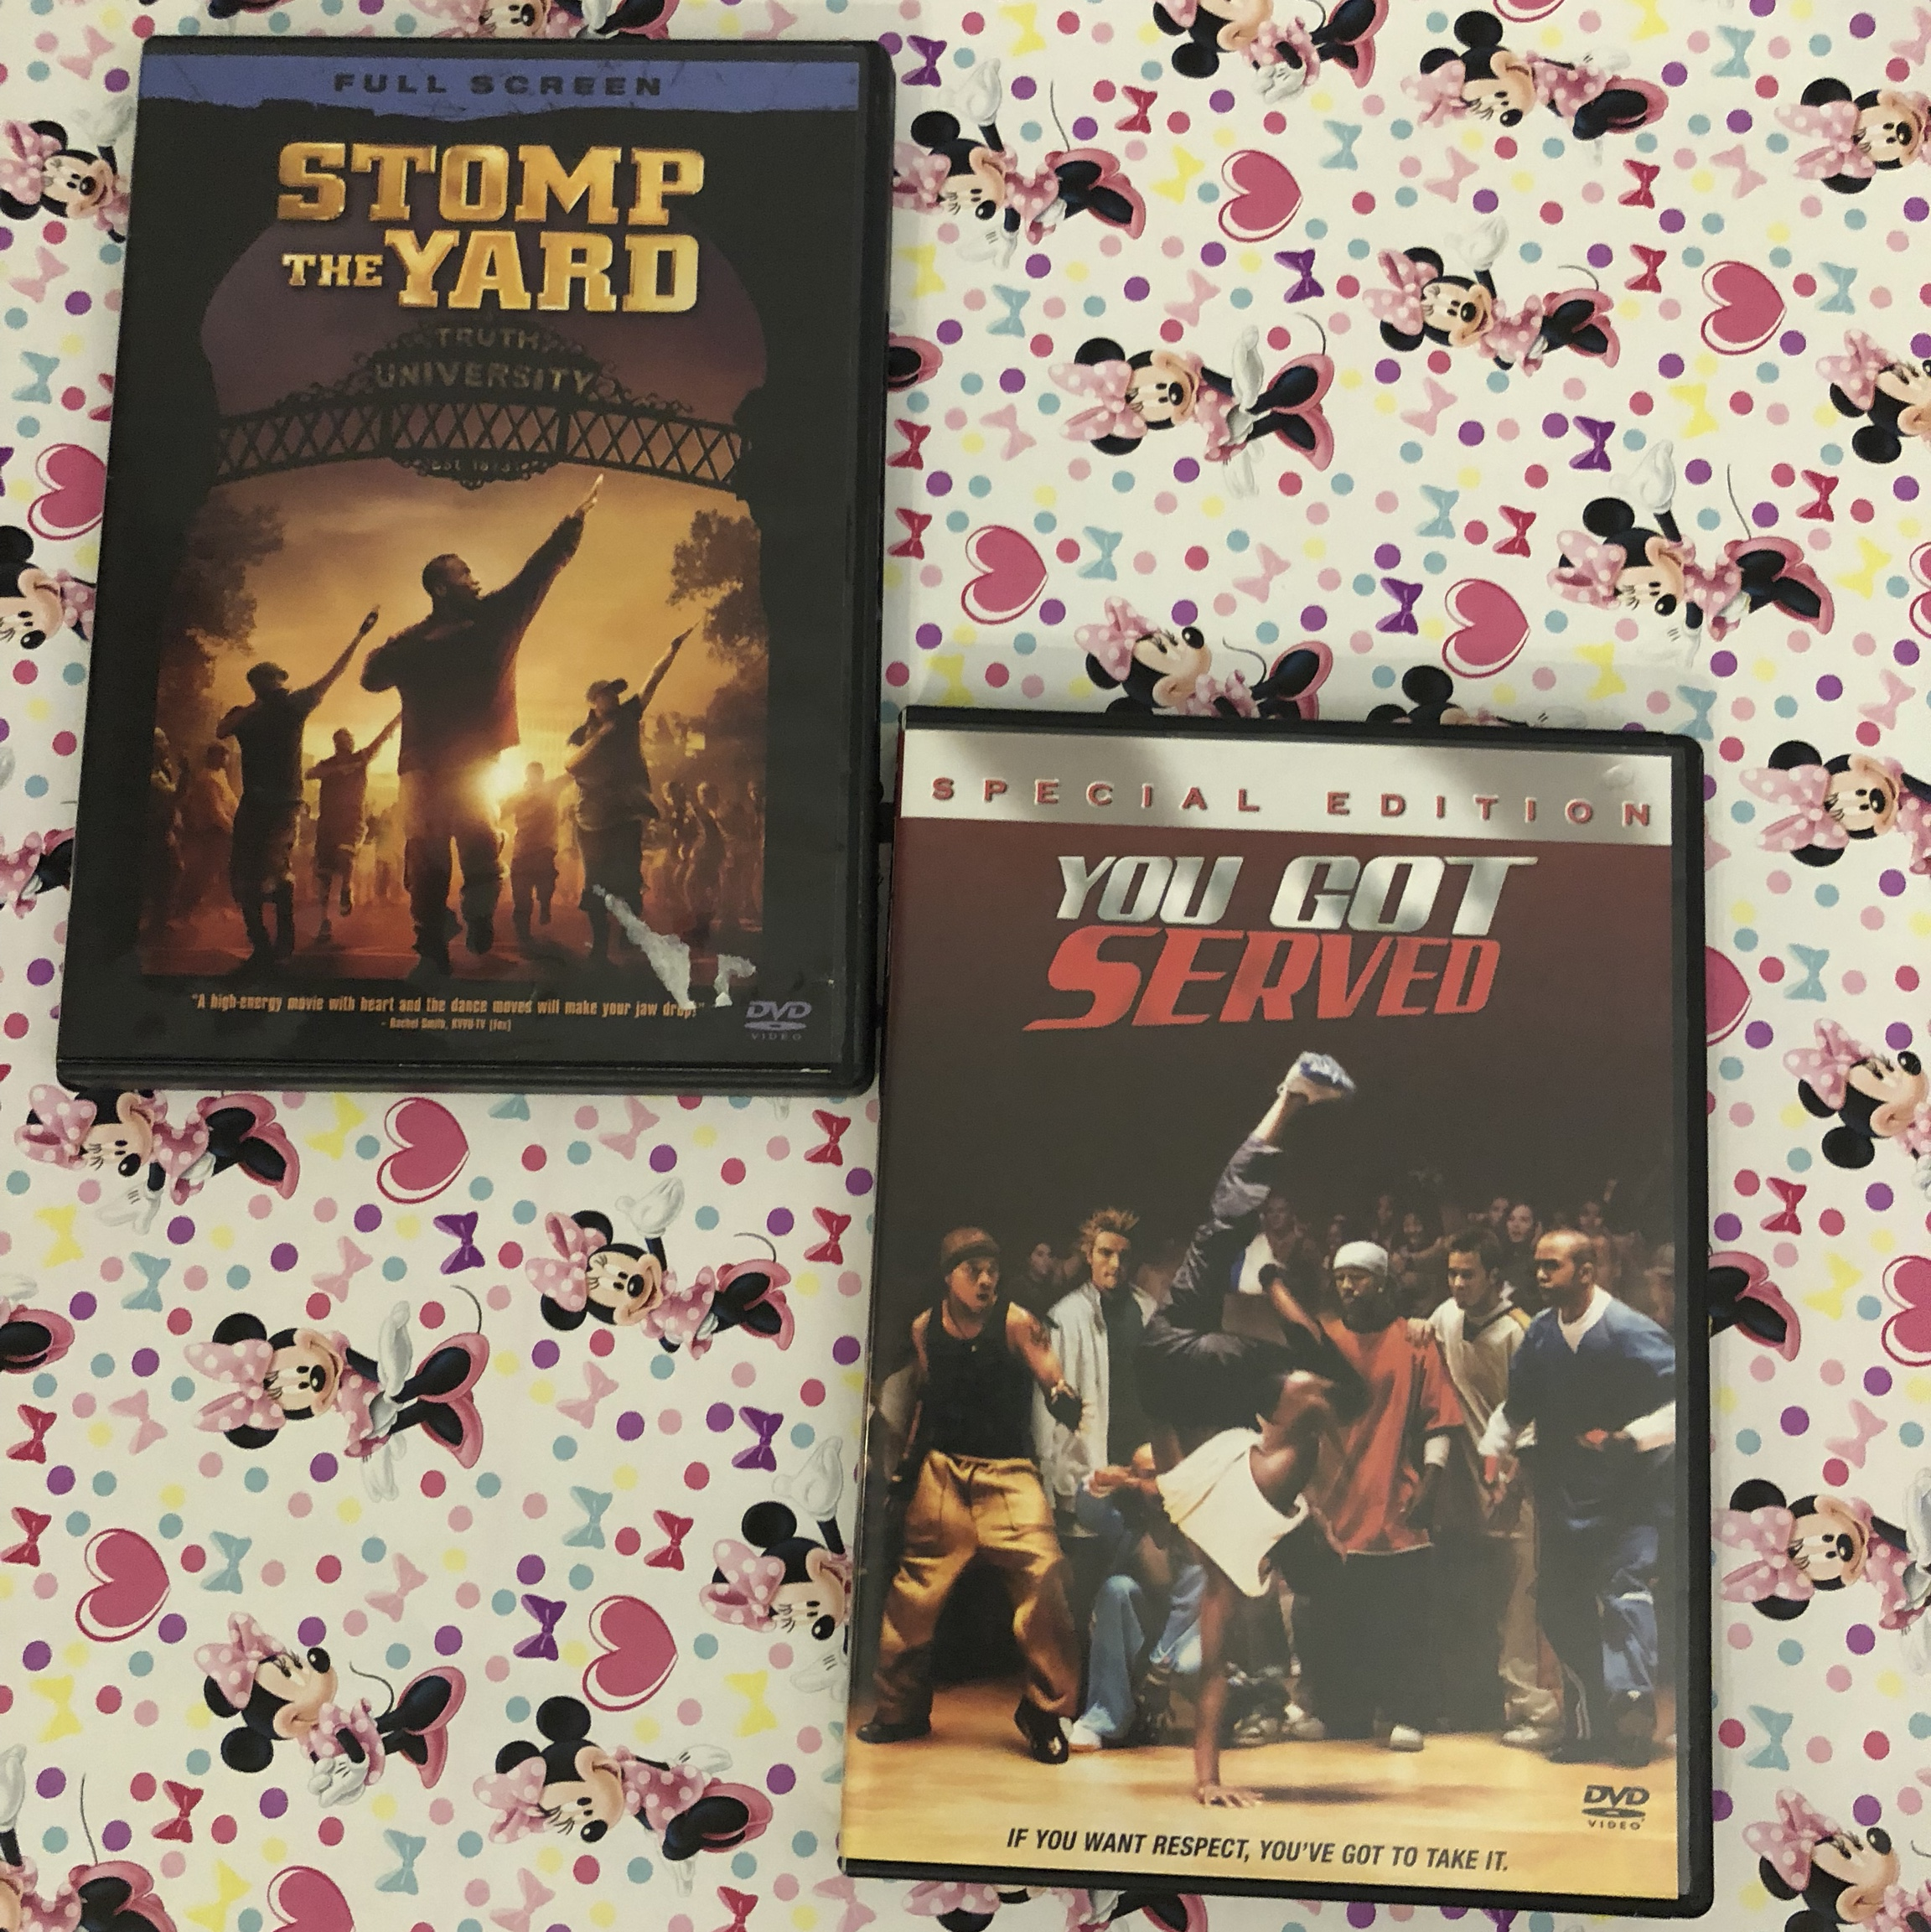 STOMP THE YARD AND YOU GOT SERVED MOVIES Like new:    - Depop